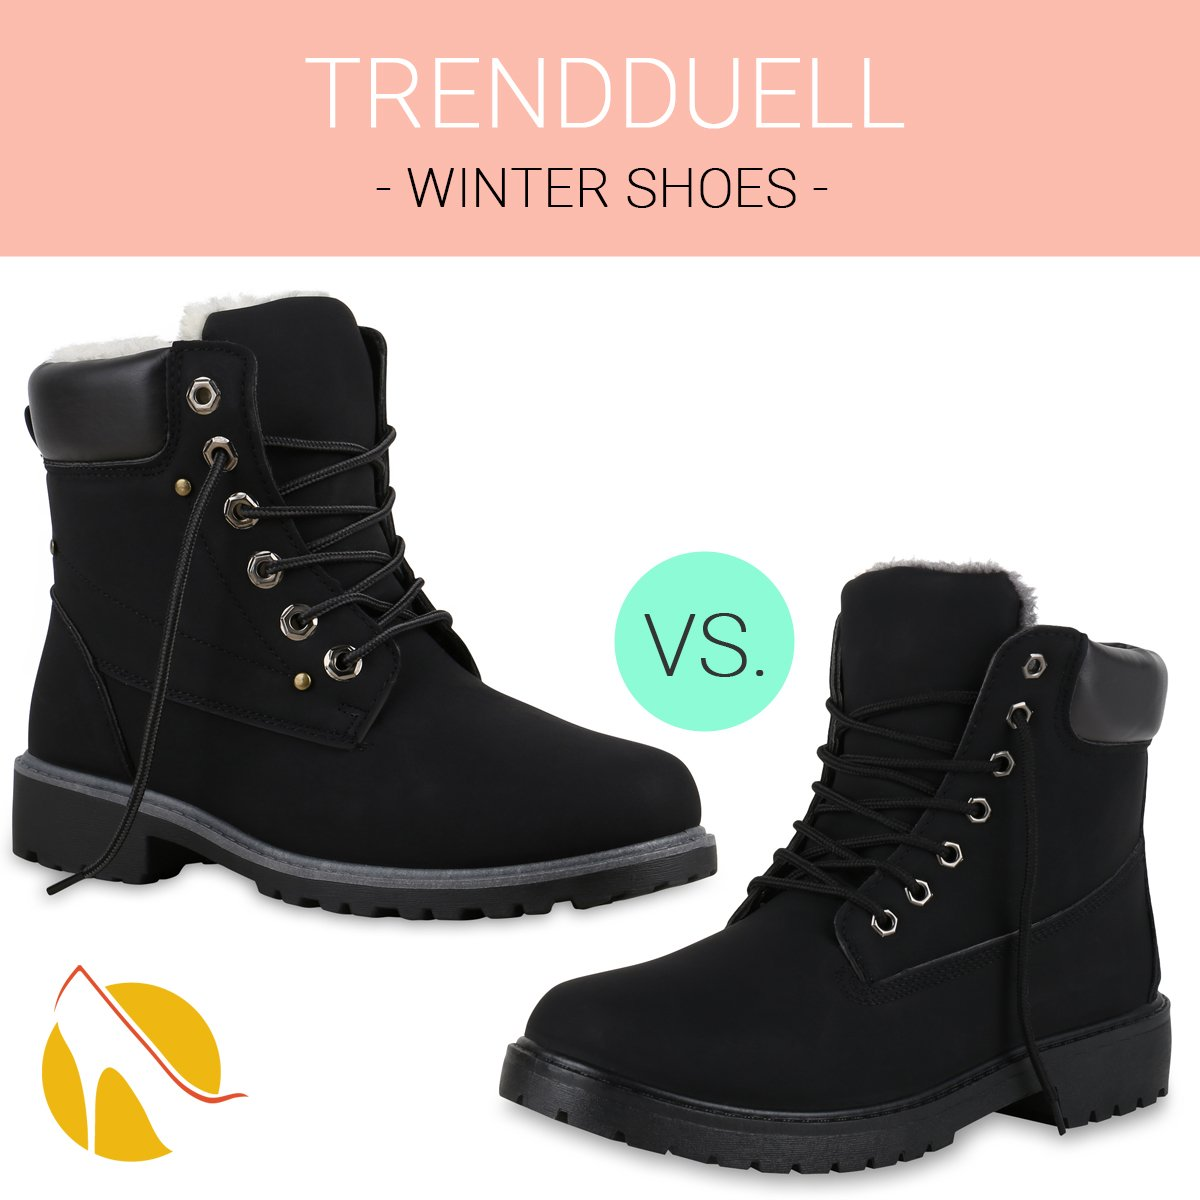 winterschuhe damen boots hashtag on Twitter